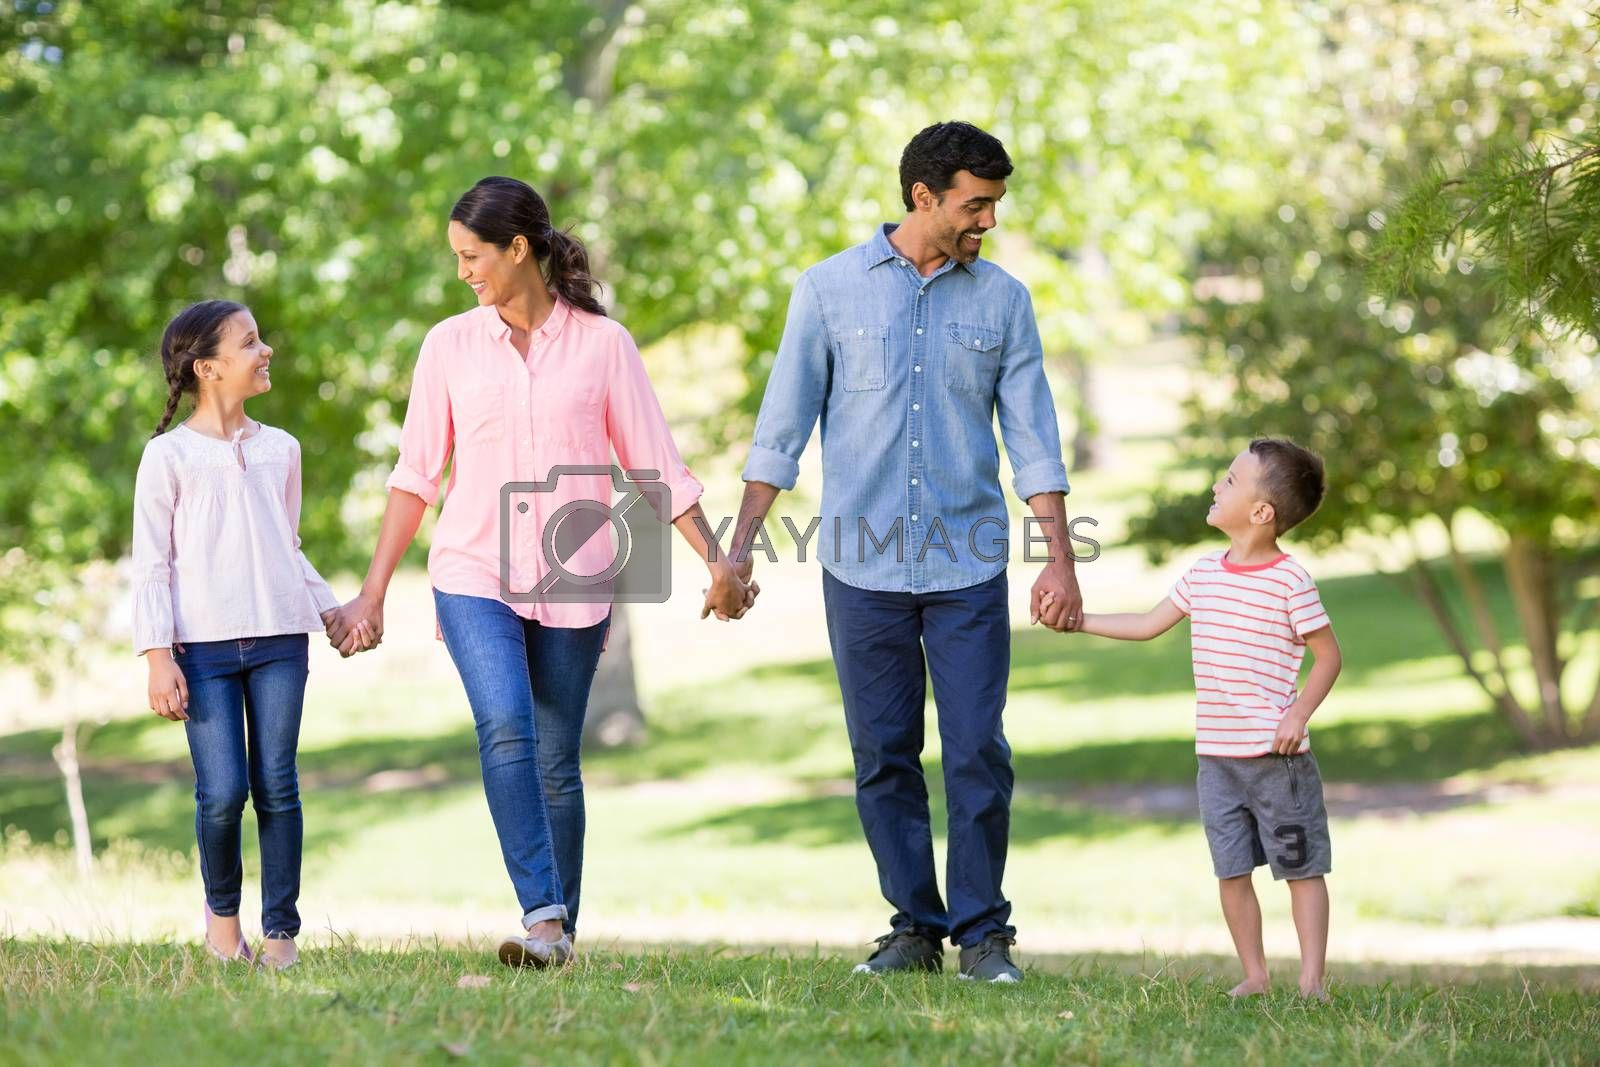 Happy family enjoying together in park on a sunny day